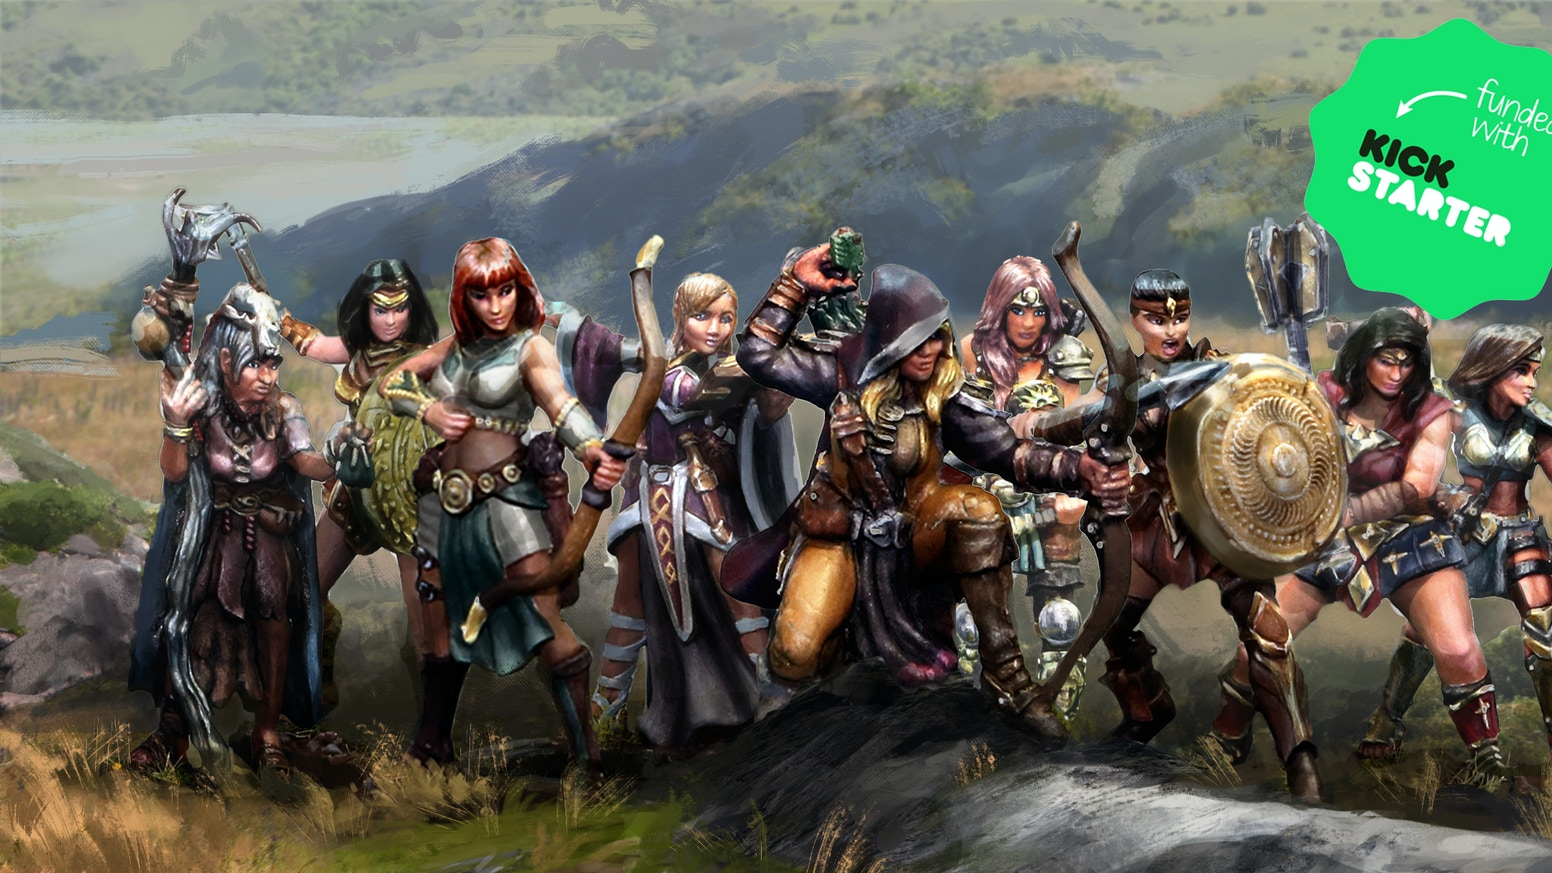 28-mm Fantasy/DnD Female Amazons of Attlemont. If your late to the party and you want our miniatures, you still have time! Pre-Order these miniature NOW! Copy and past the link: https://28-mm-fantasy-female-amazons.backerkit.com/hosted_preorders